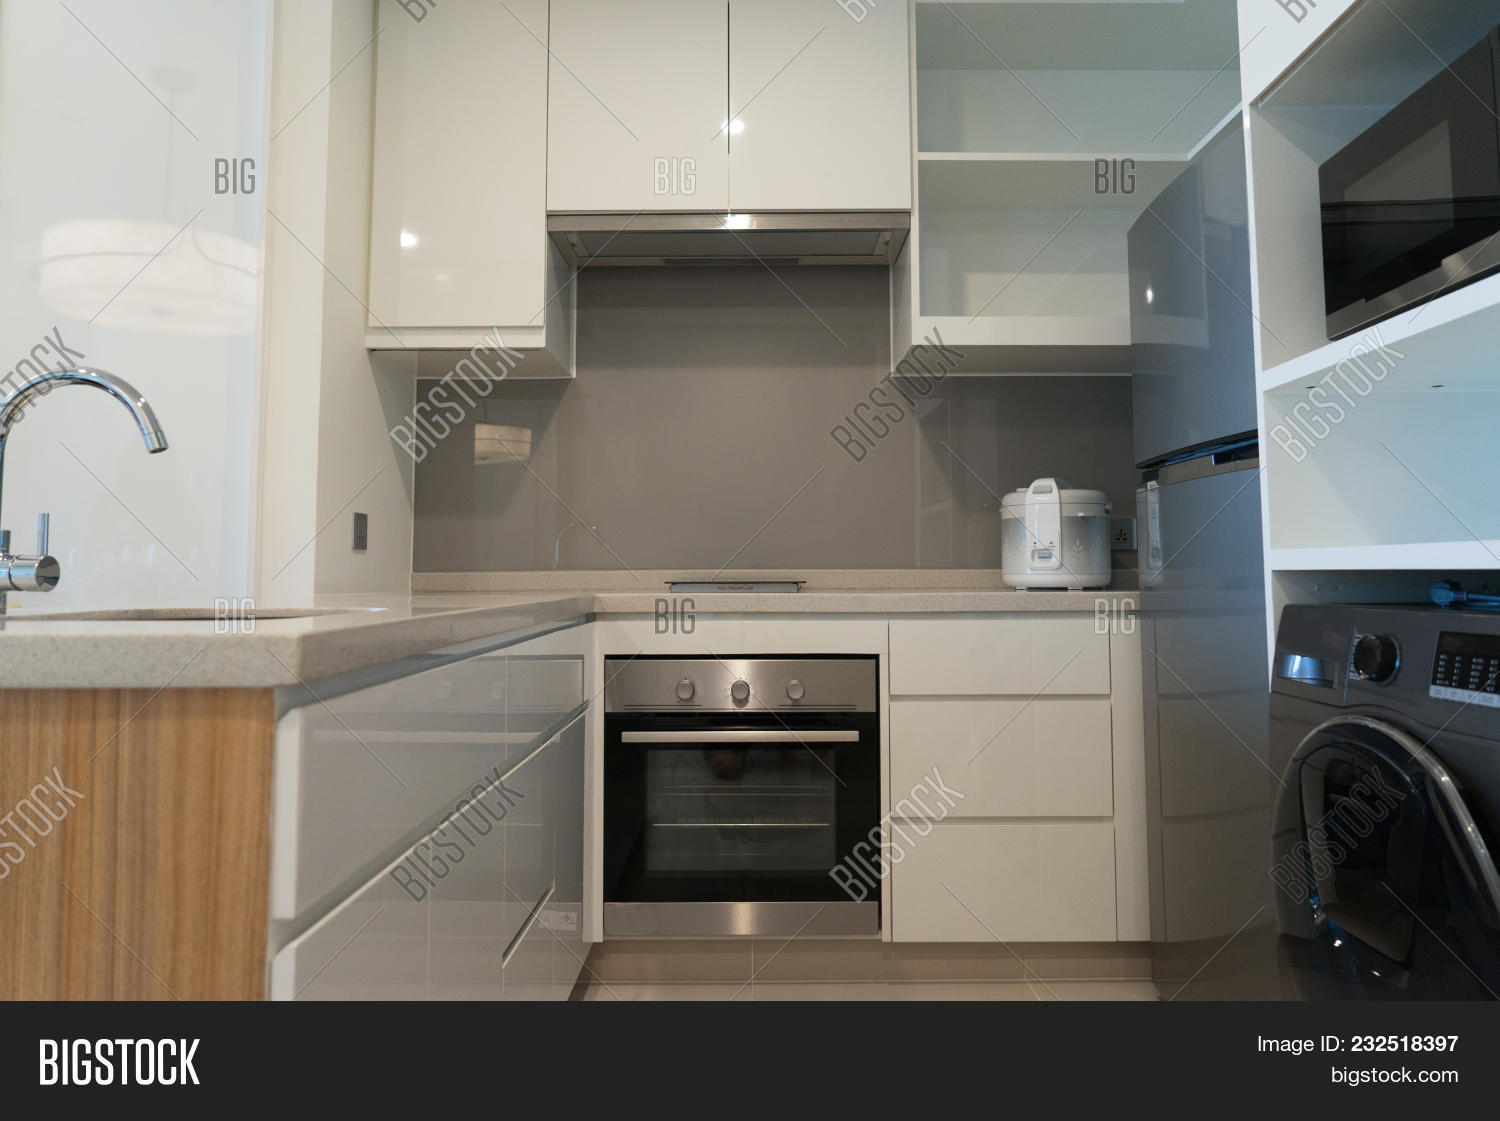 Small kitchen set equipped with appliances such like freezer washing machine microwave electric oven and stove cooking area concept